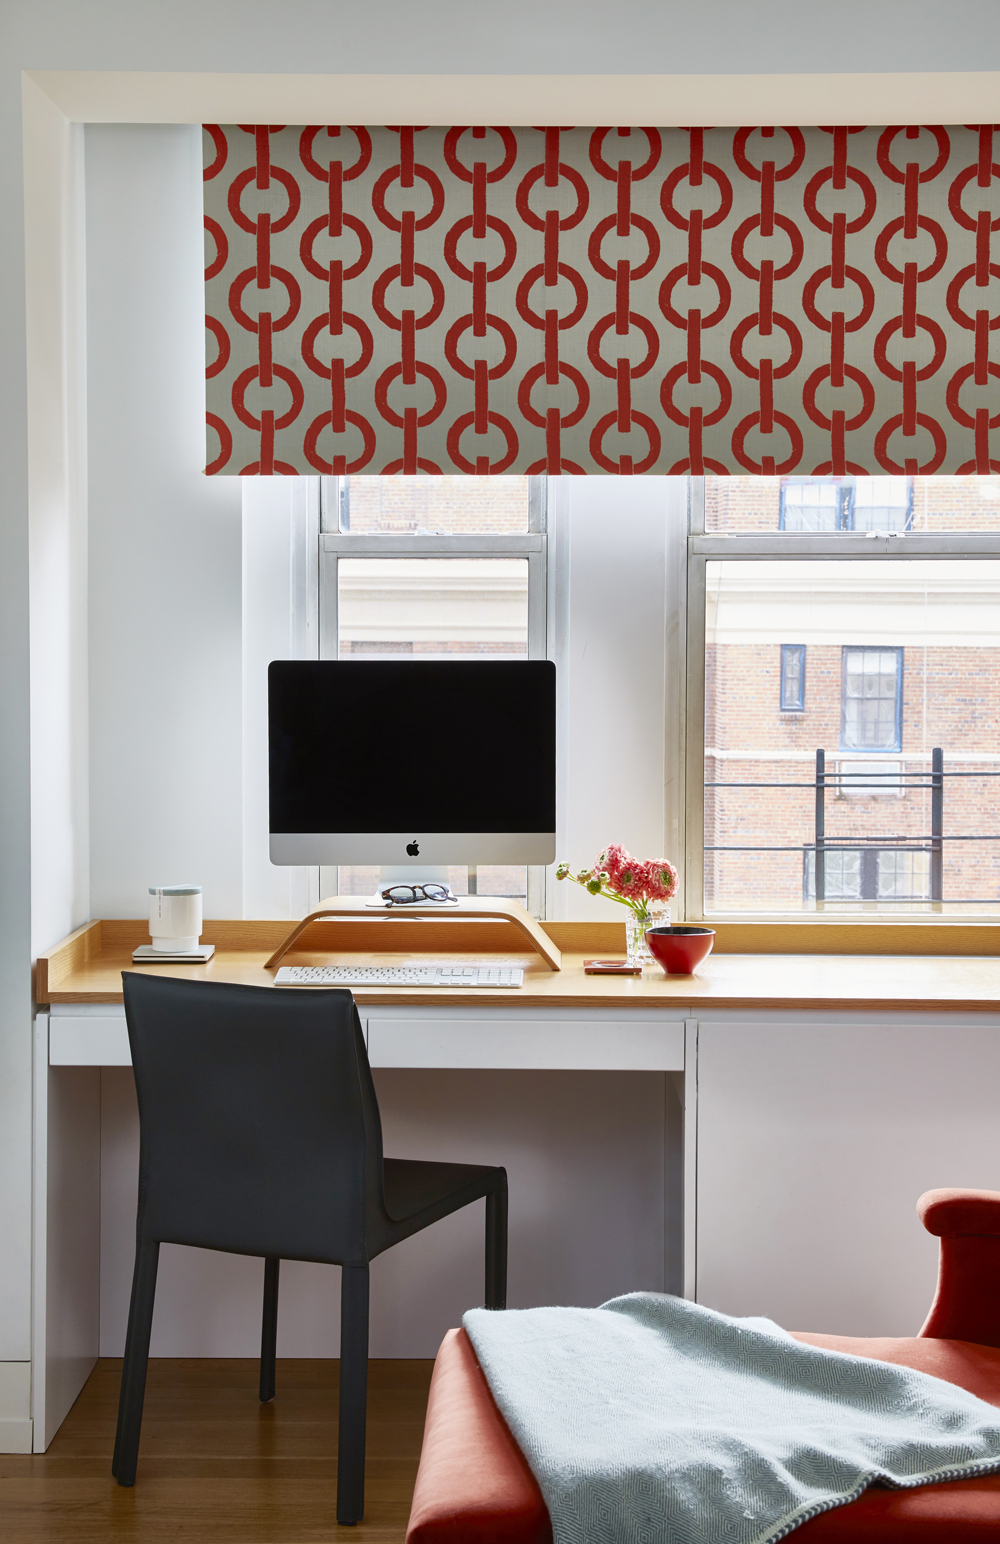 Close-Up-Red-Home-Office-Apple-Imac-JMorris-Design-Interior-Designer-Brooklyn-New-York-Online.jpg